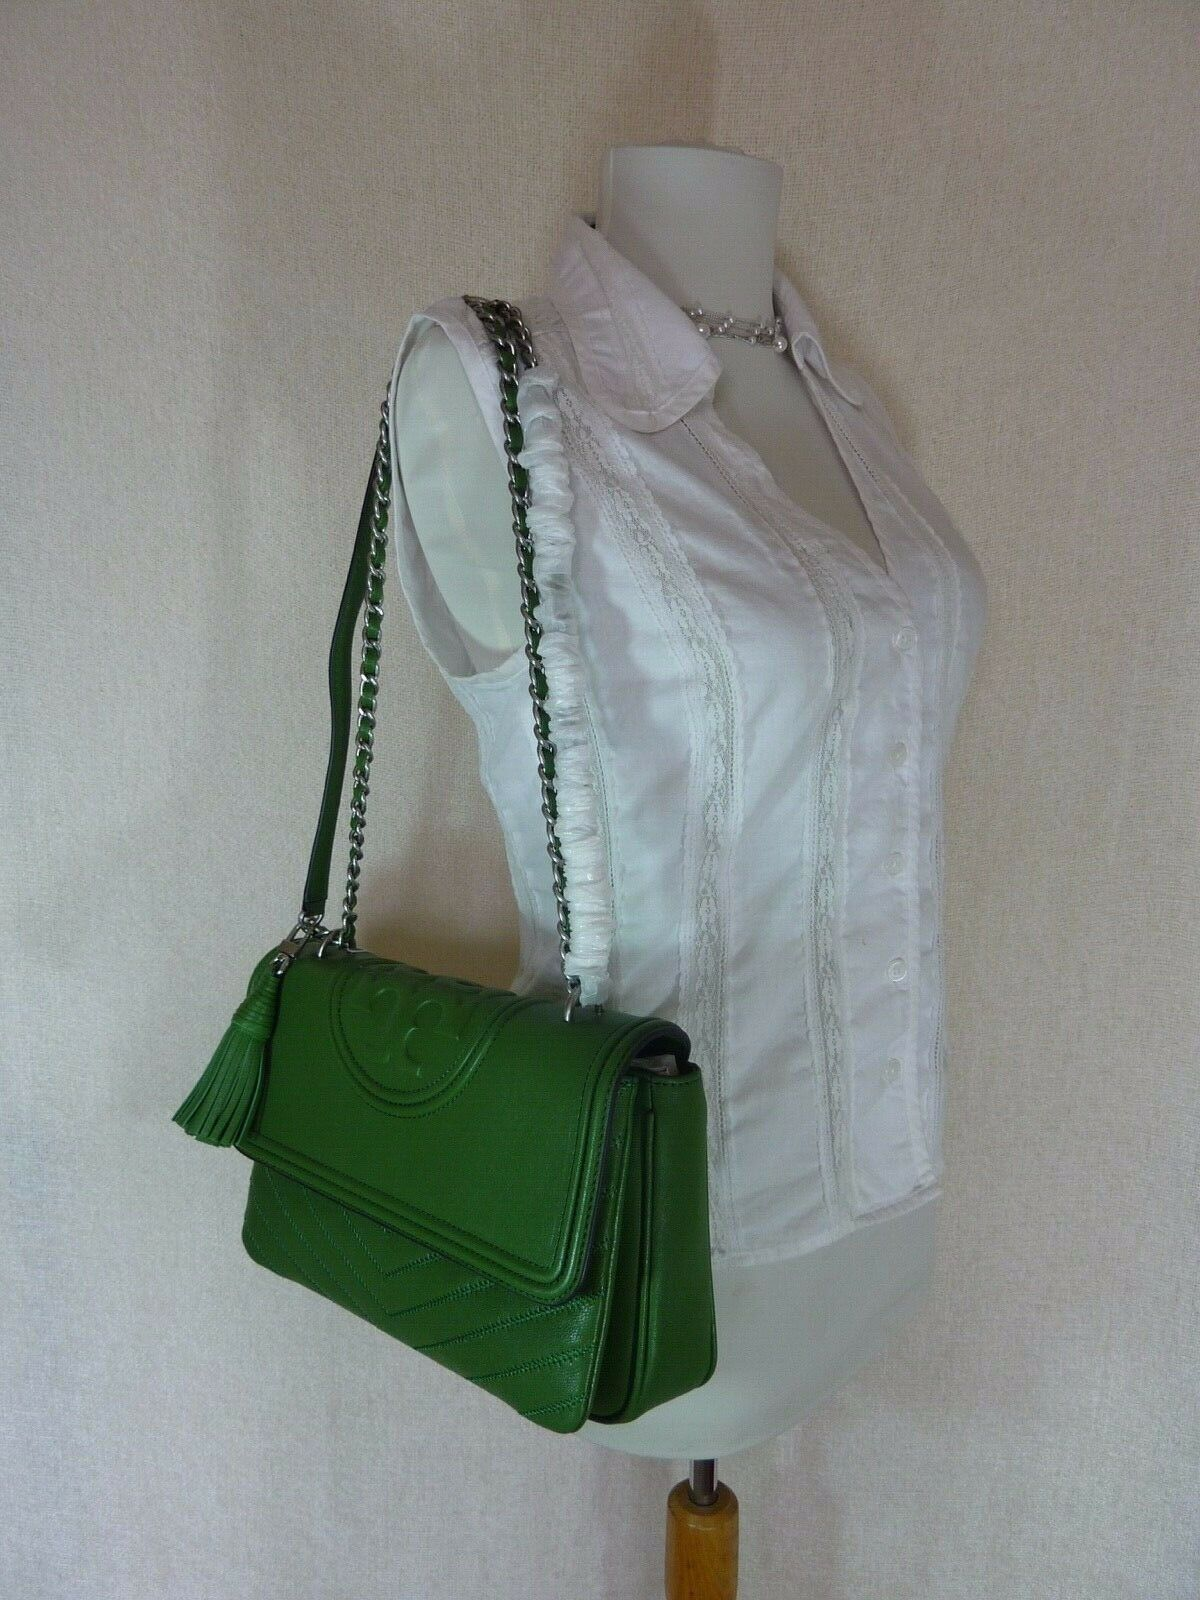 NWT Tory Burch Watercress Green Leather Fleming Convertible Shoulder Bag image 11